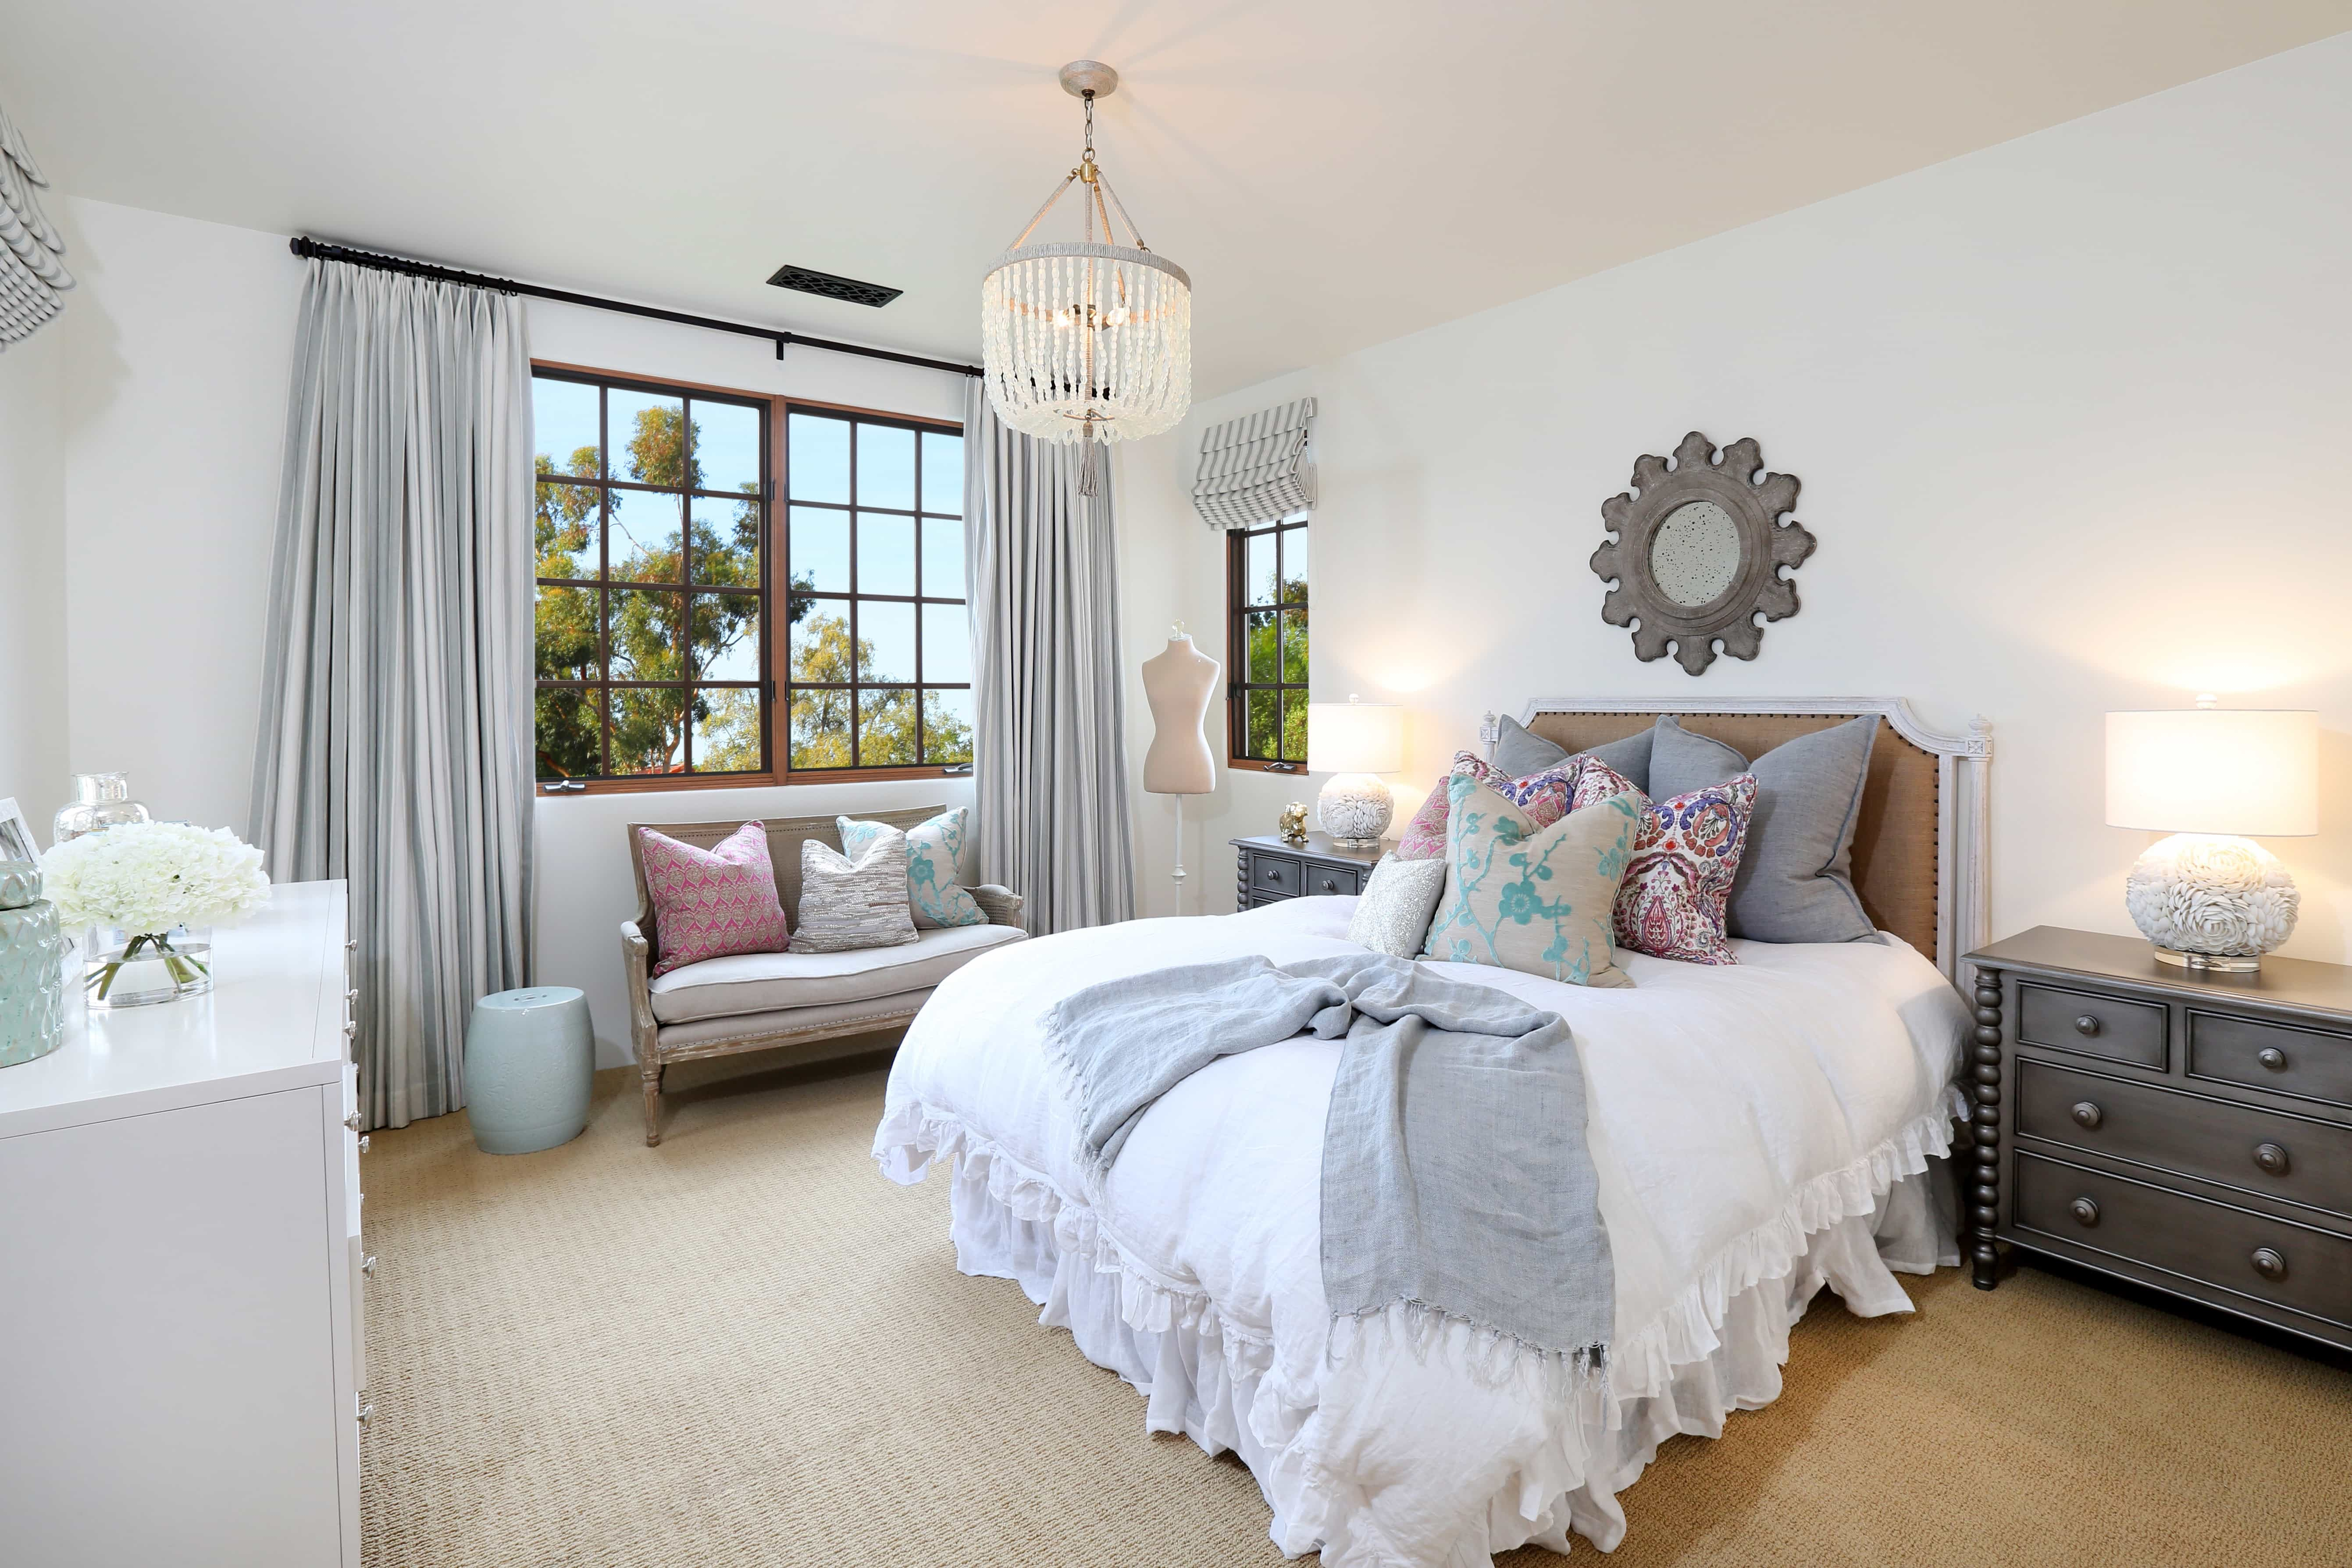 How To Decorate A Shabby Chic Bedroom